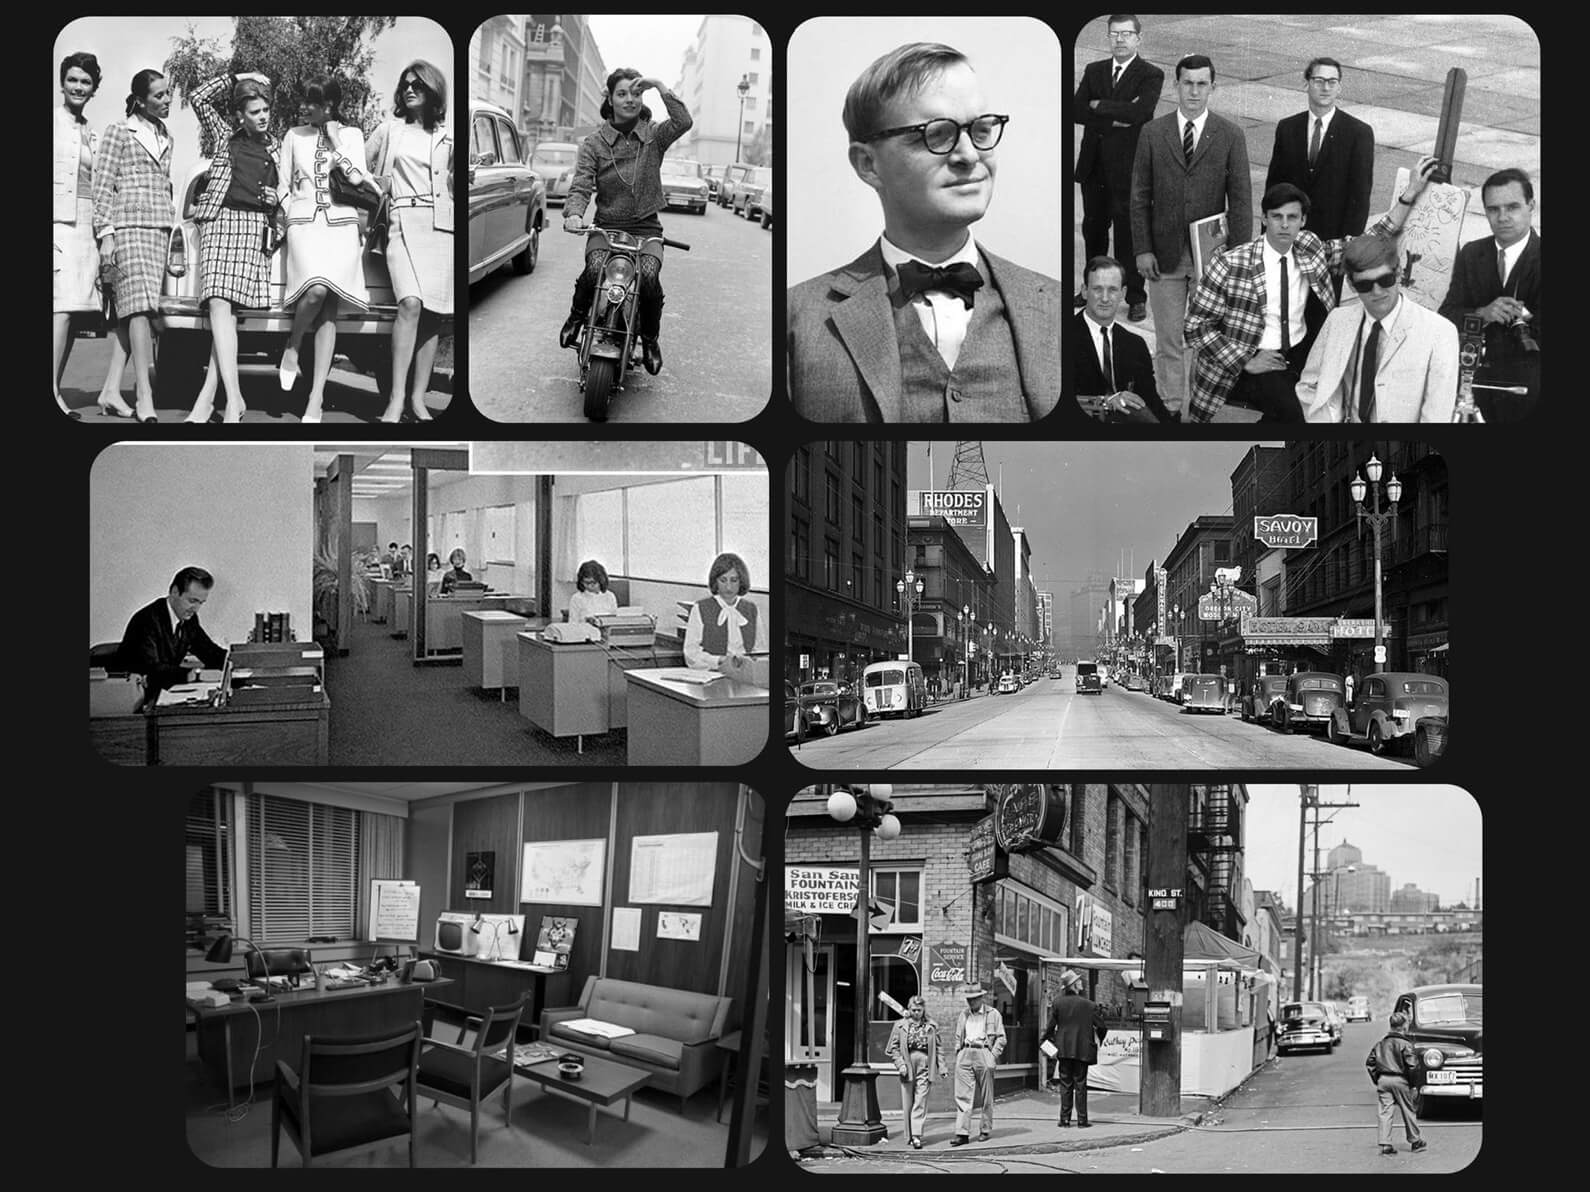 50's era black and white photographs depicting fashion and stylistic inspiration for Orientation Center for the Unseen